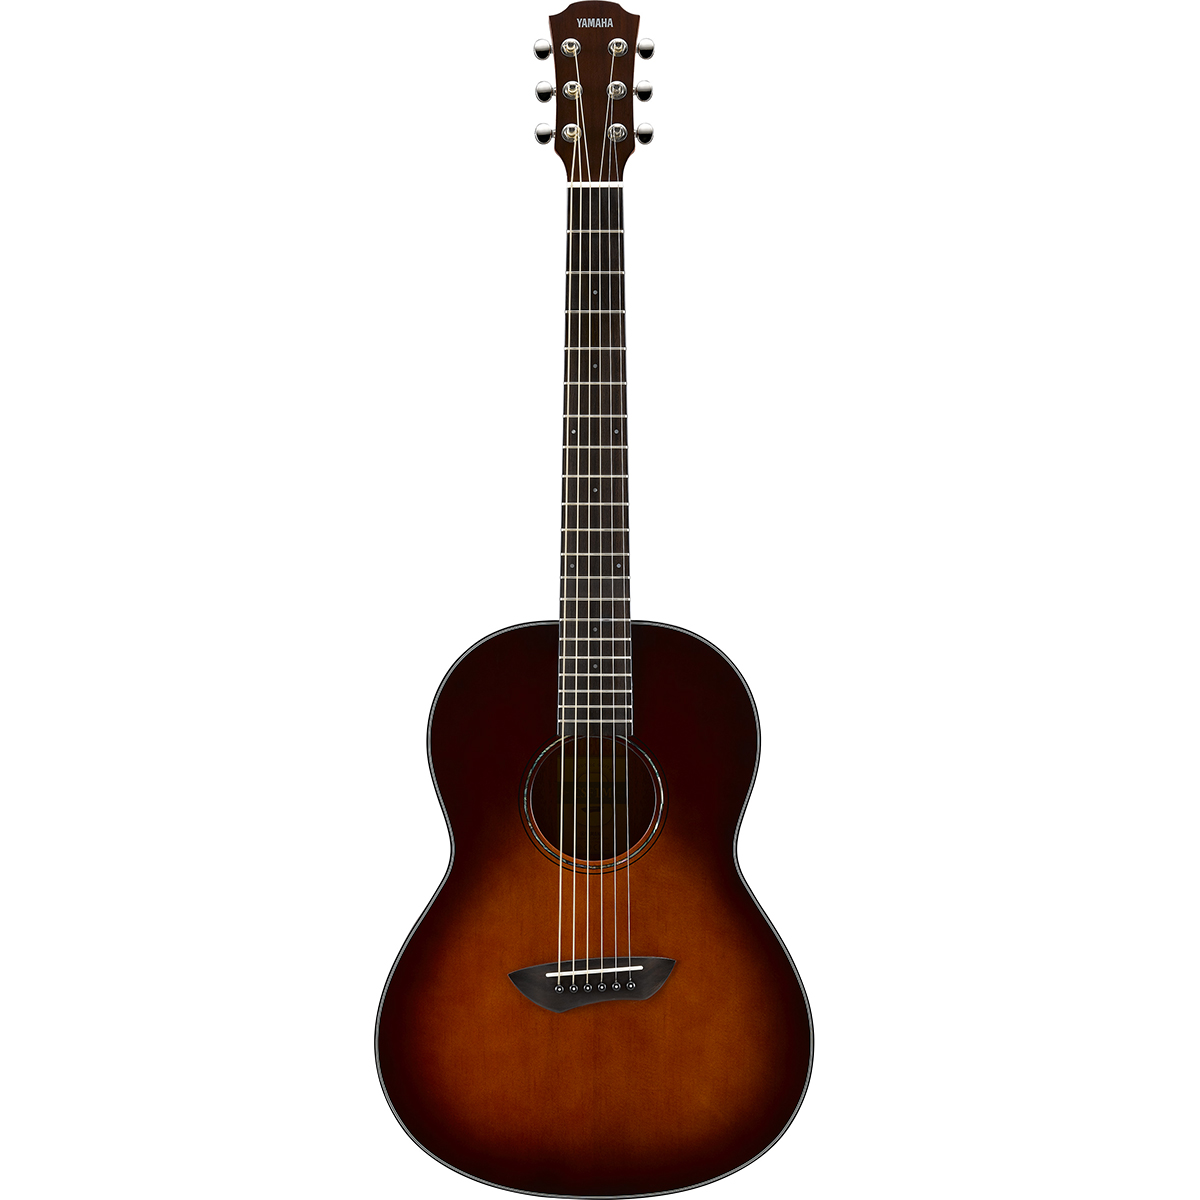 Yamaha - CSF1M - Tobacco Brown